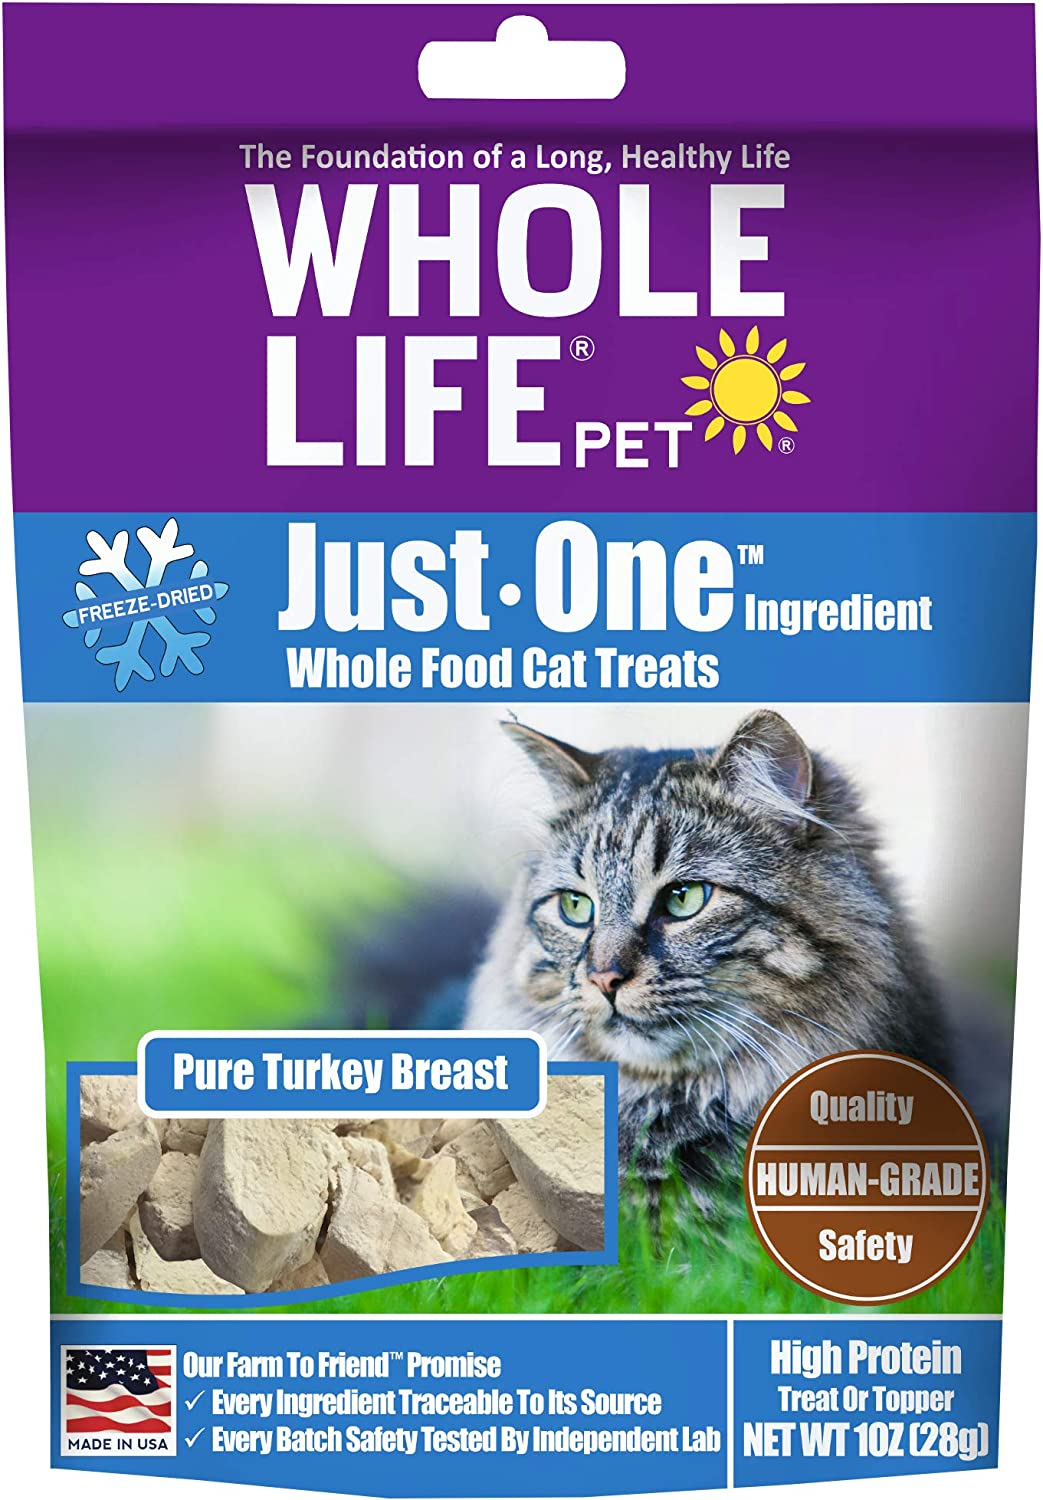 Whole Life Pet Products Healthy Turkey Cat Treats , Human-Grade Whole Turkey Breast, Protein Rich for Training, Picky Eaters, Digestion, Weight Control, Made in the USA, 1 Ounce, blue/purple, TK779